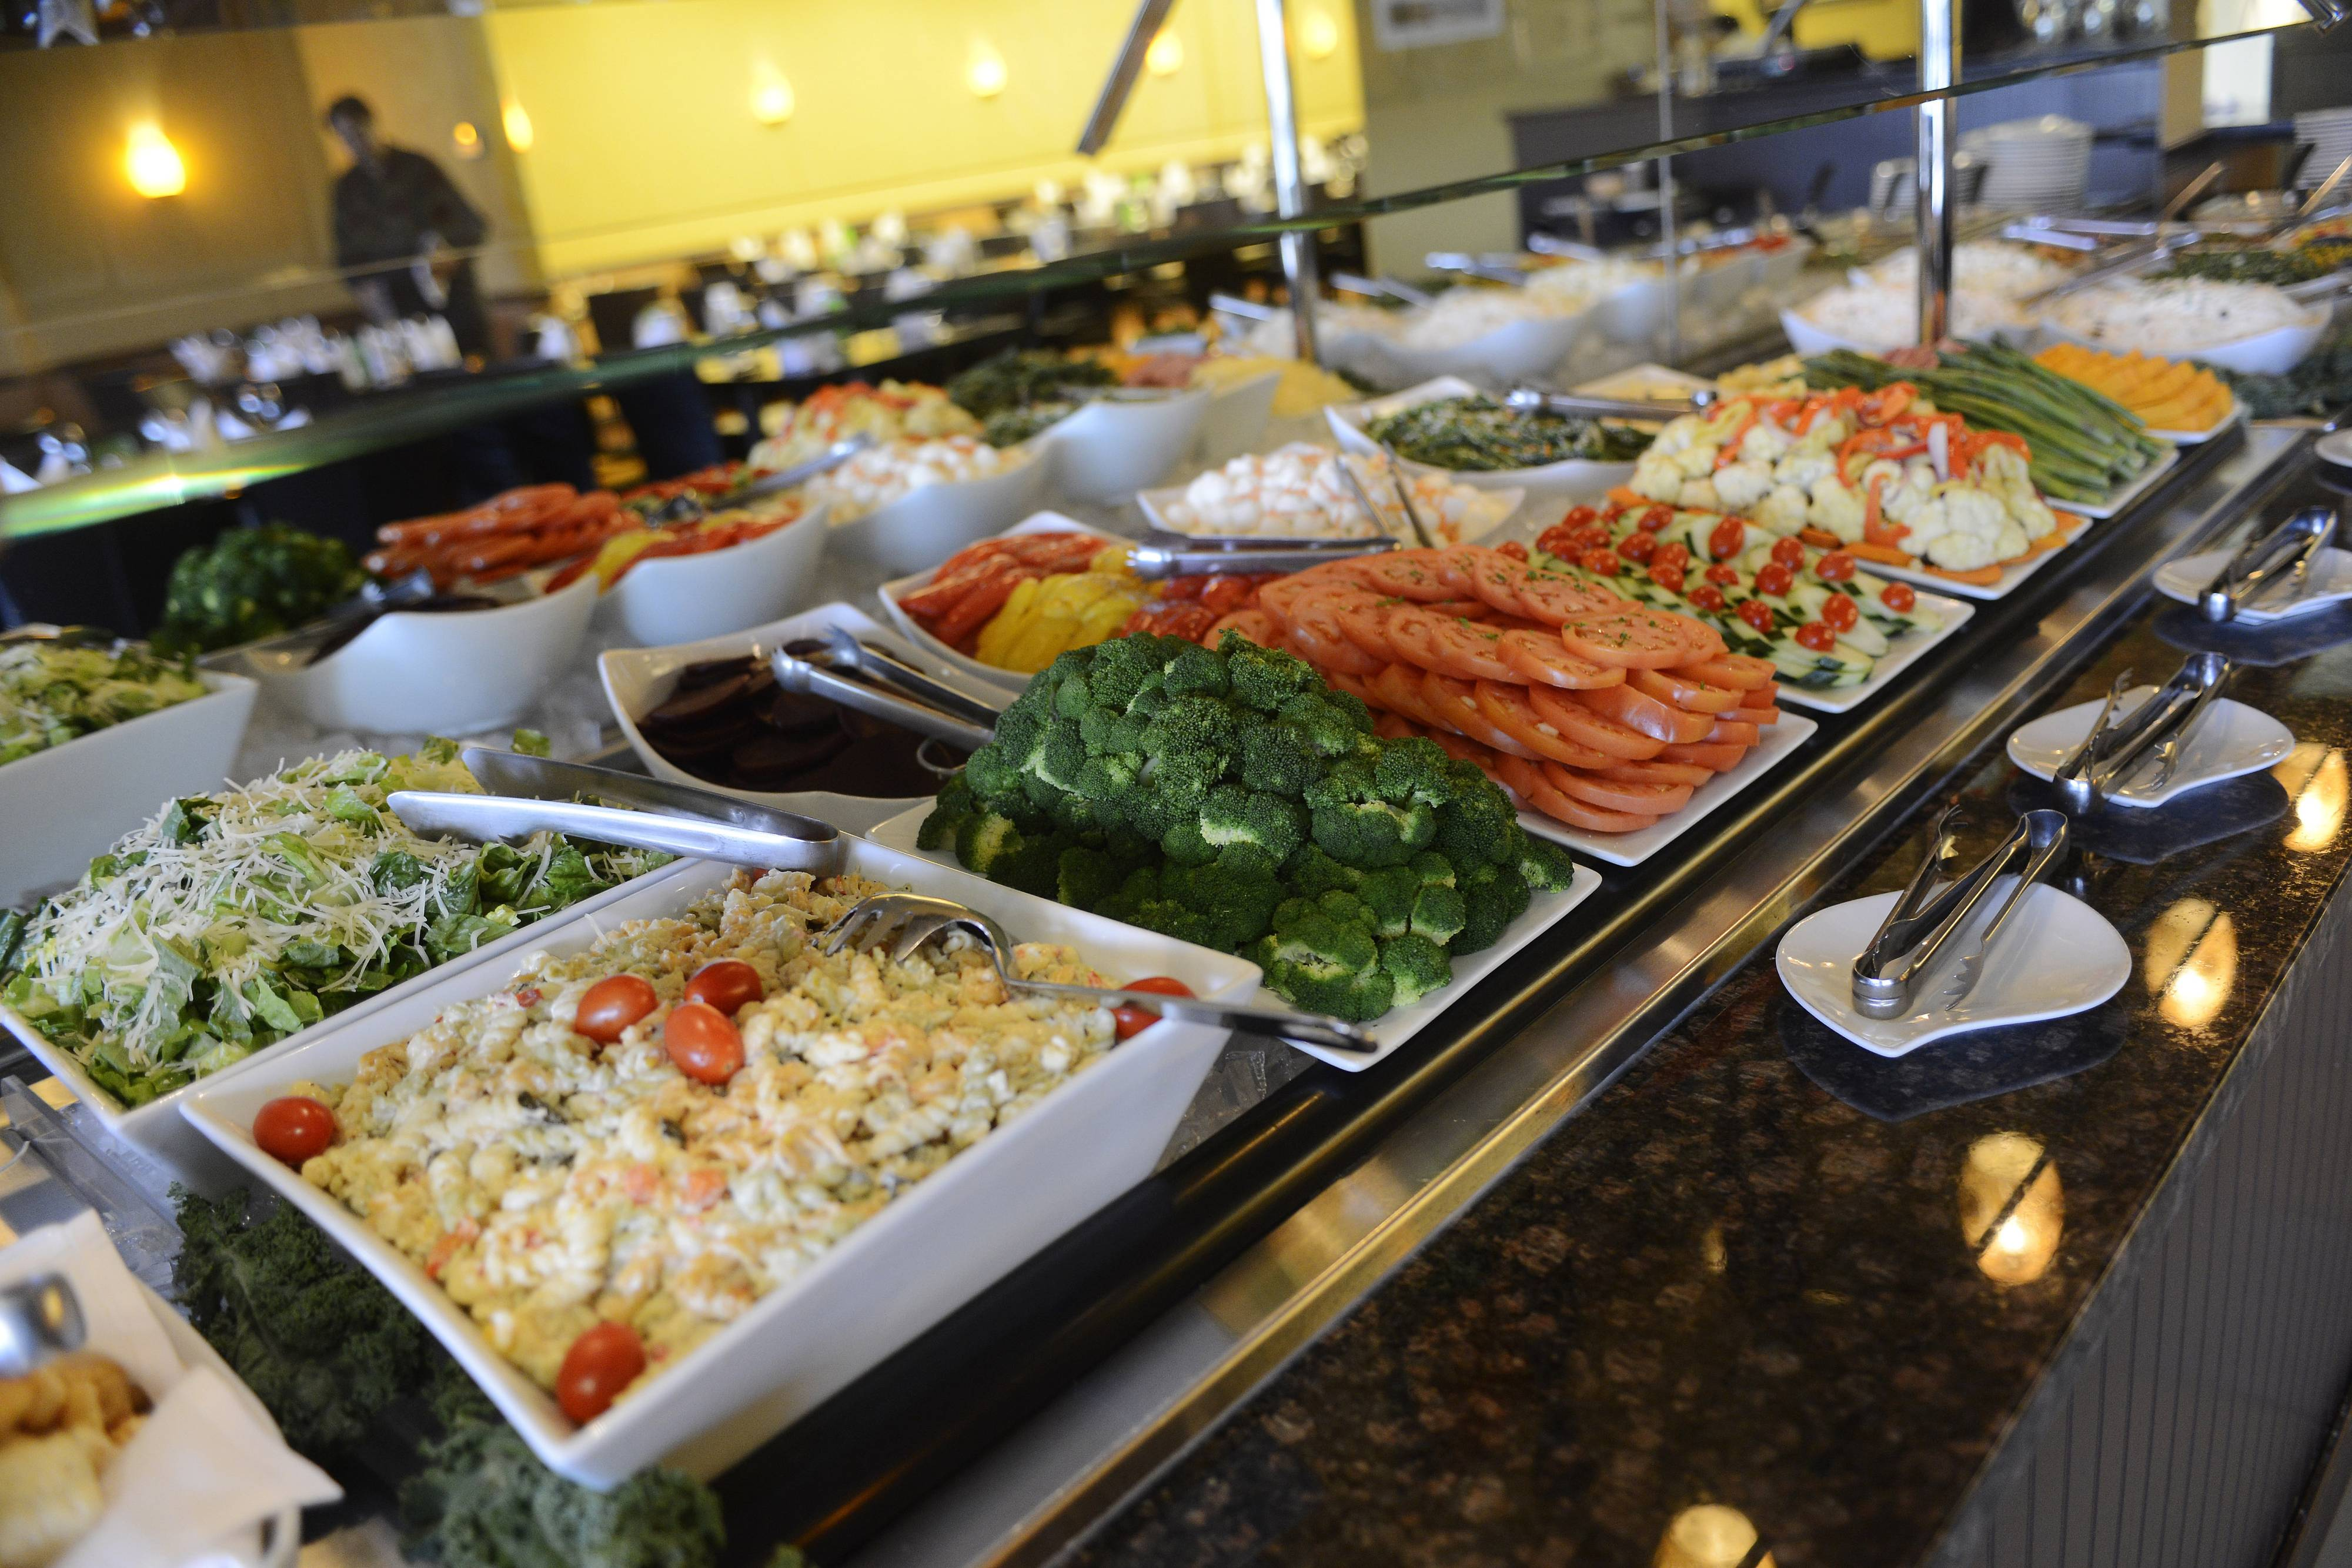 The all-you-can-eat salad bar at Brazil Express welcomes diners during Chicago Northwest Restaurant Week.